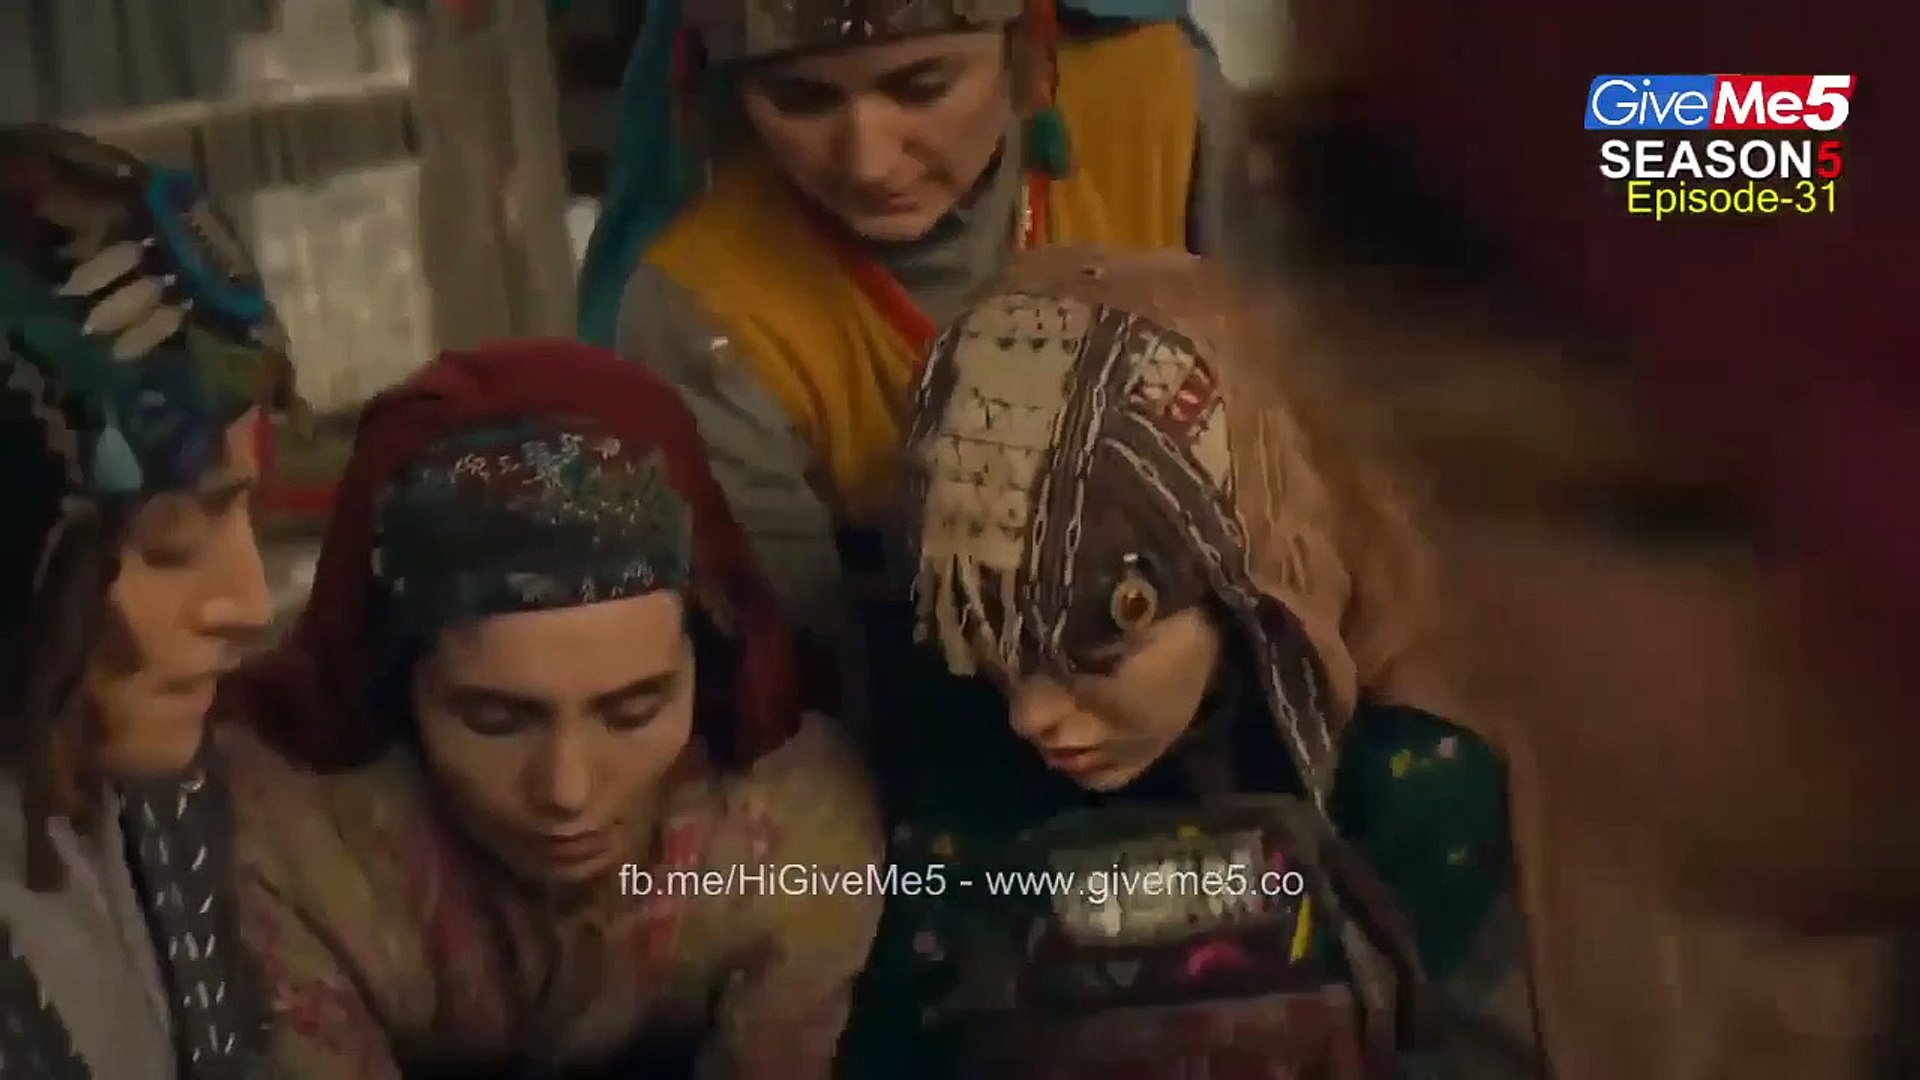 Dirilis Ertugrul Ghazi Season 5 in Urdu Subtitle Episode 31 & 32